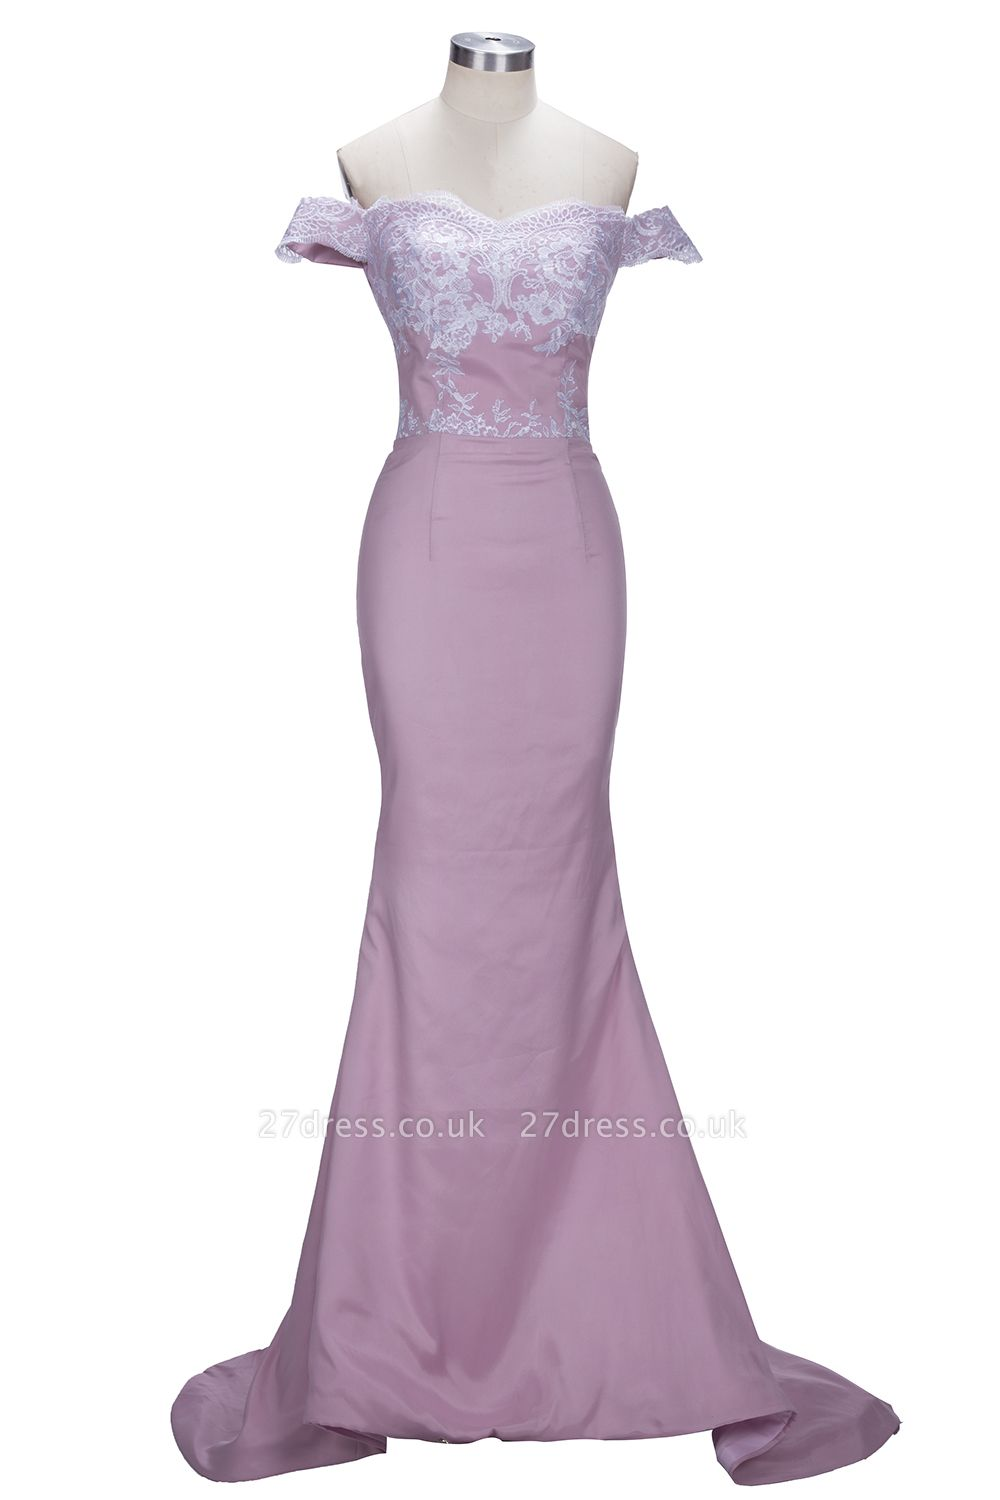 Blush Pink Off-the-Shoulder Lace Appliques Mermaid Prom Dress UKes UK